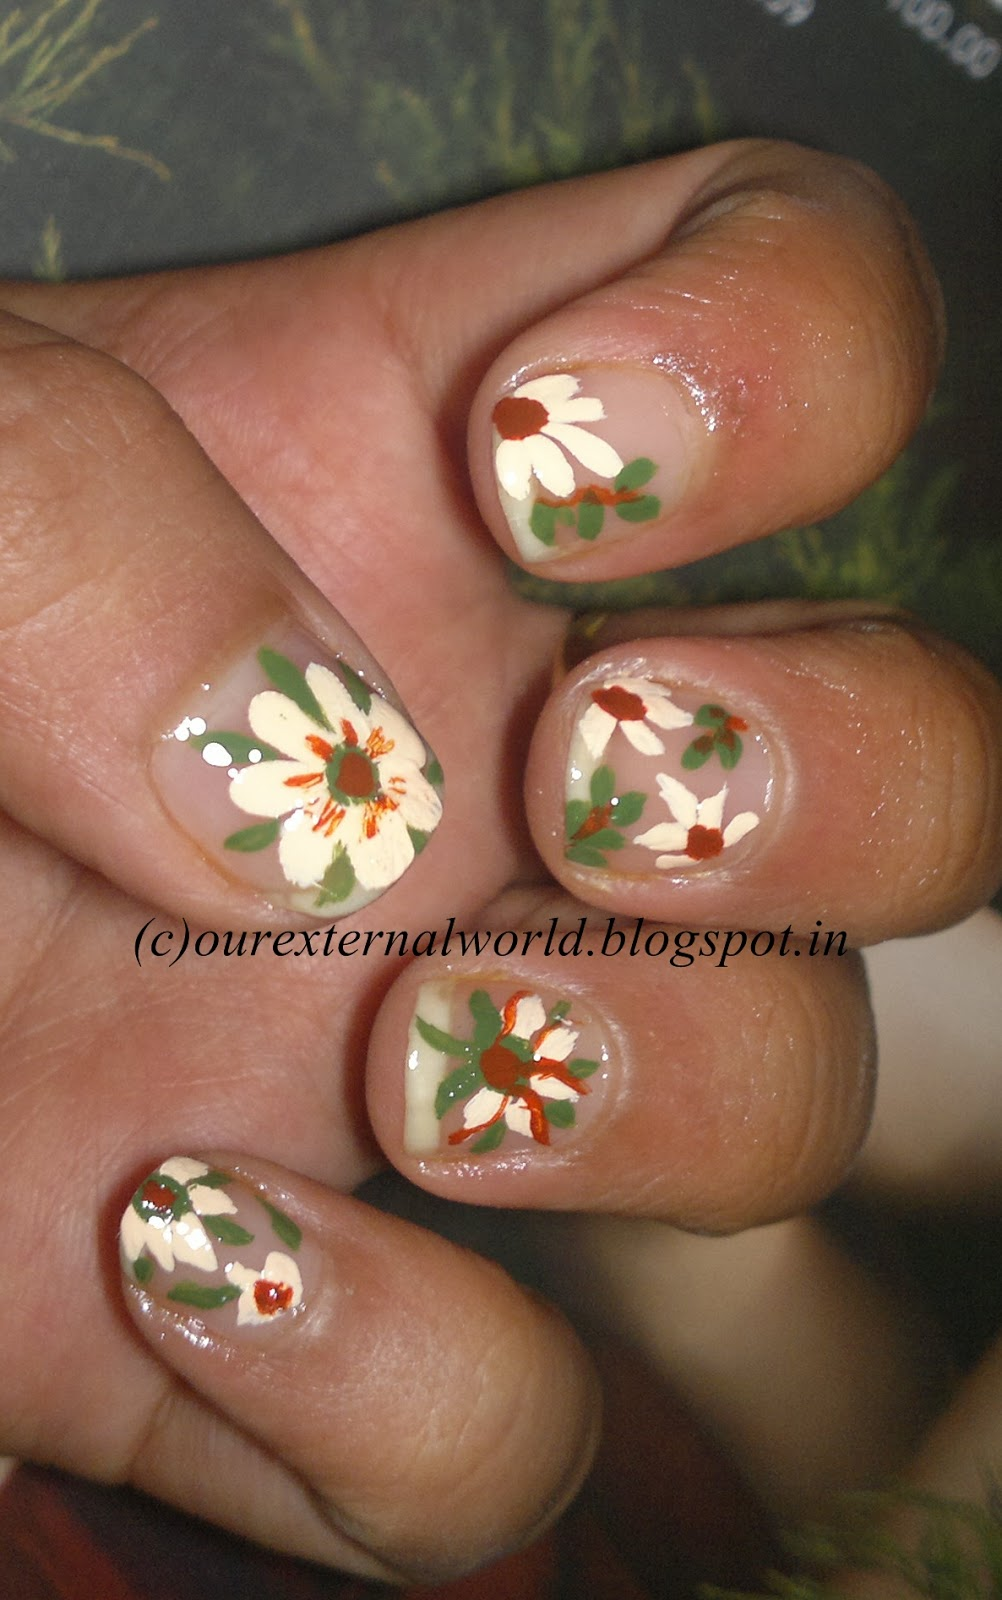 Hot To Paint Your Nails